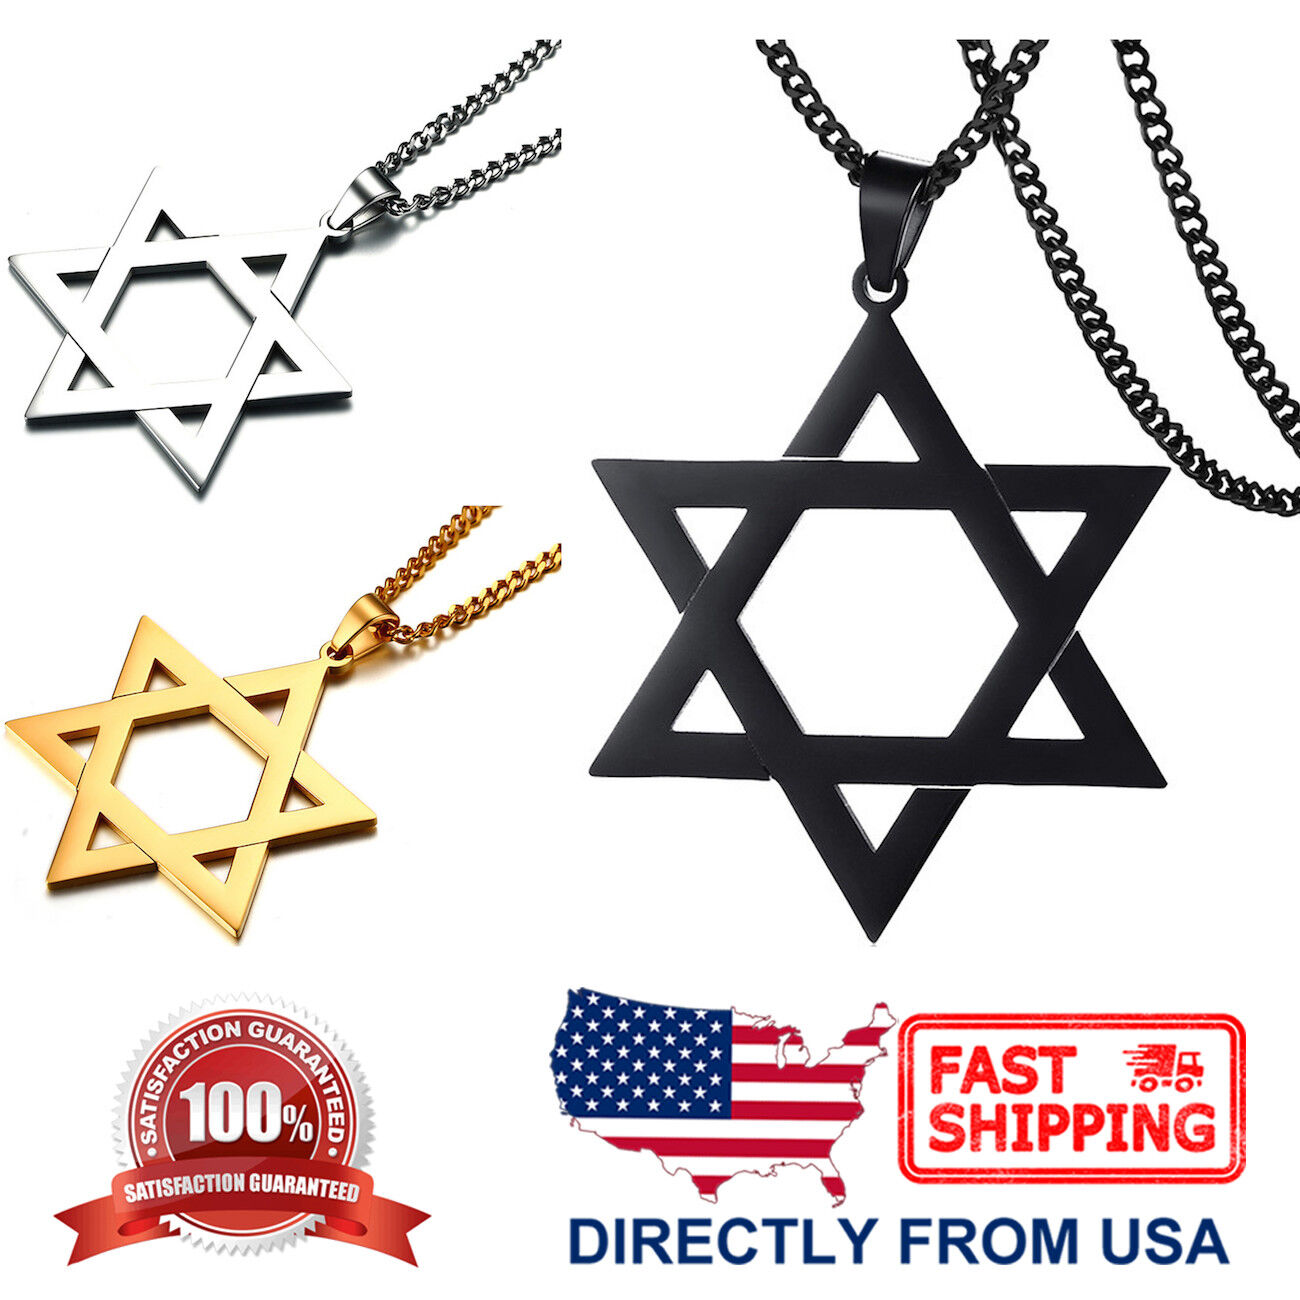 Men's Large Stainless Steel Star of David Pendant Necklace Chains, Necklaces & Pendants